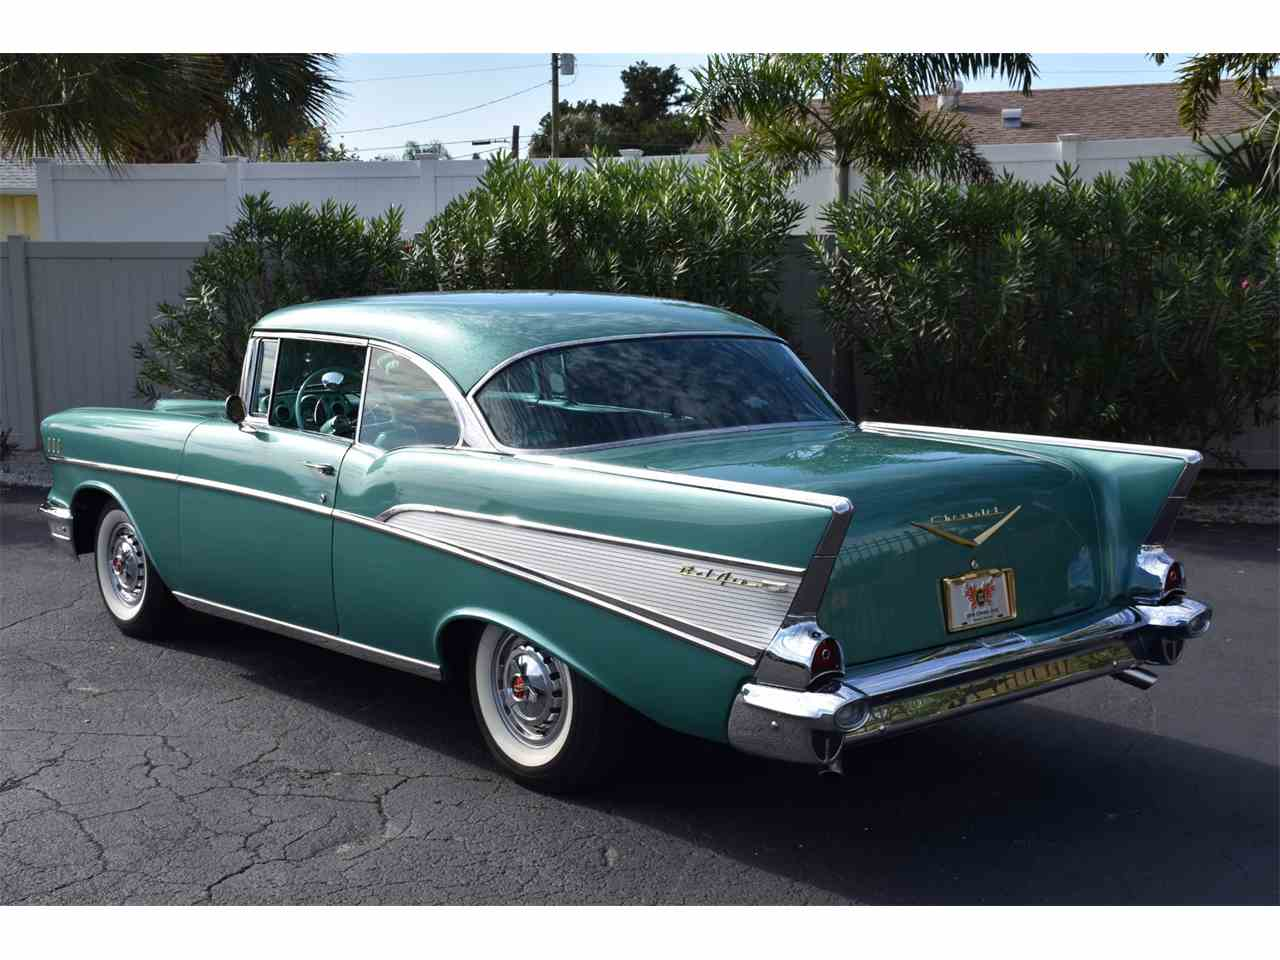 Large Picture of 1957 Bel Air located in Venice Florida Auction Vehicle Offered by Ideal Classic Cars - MH2G